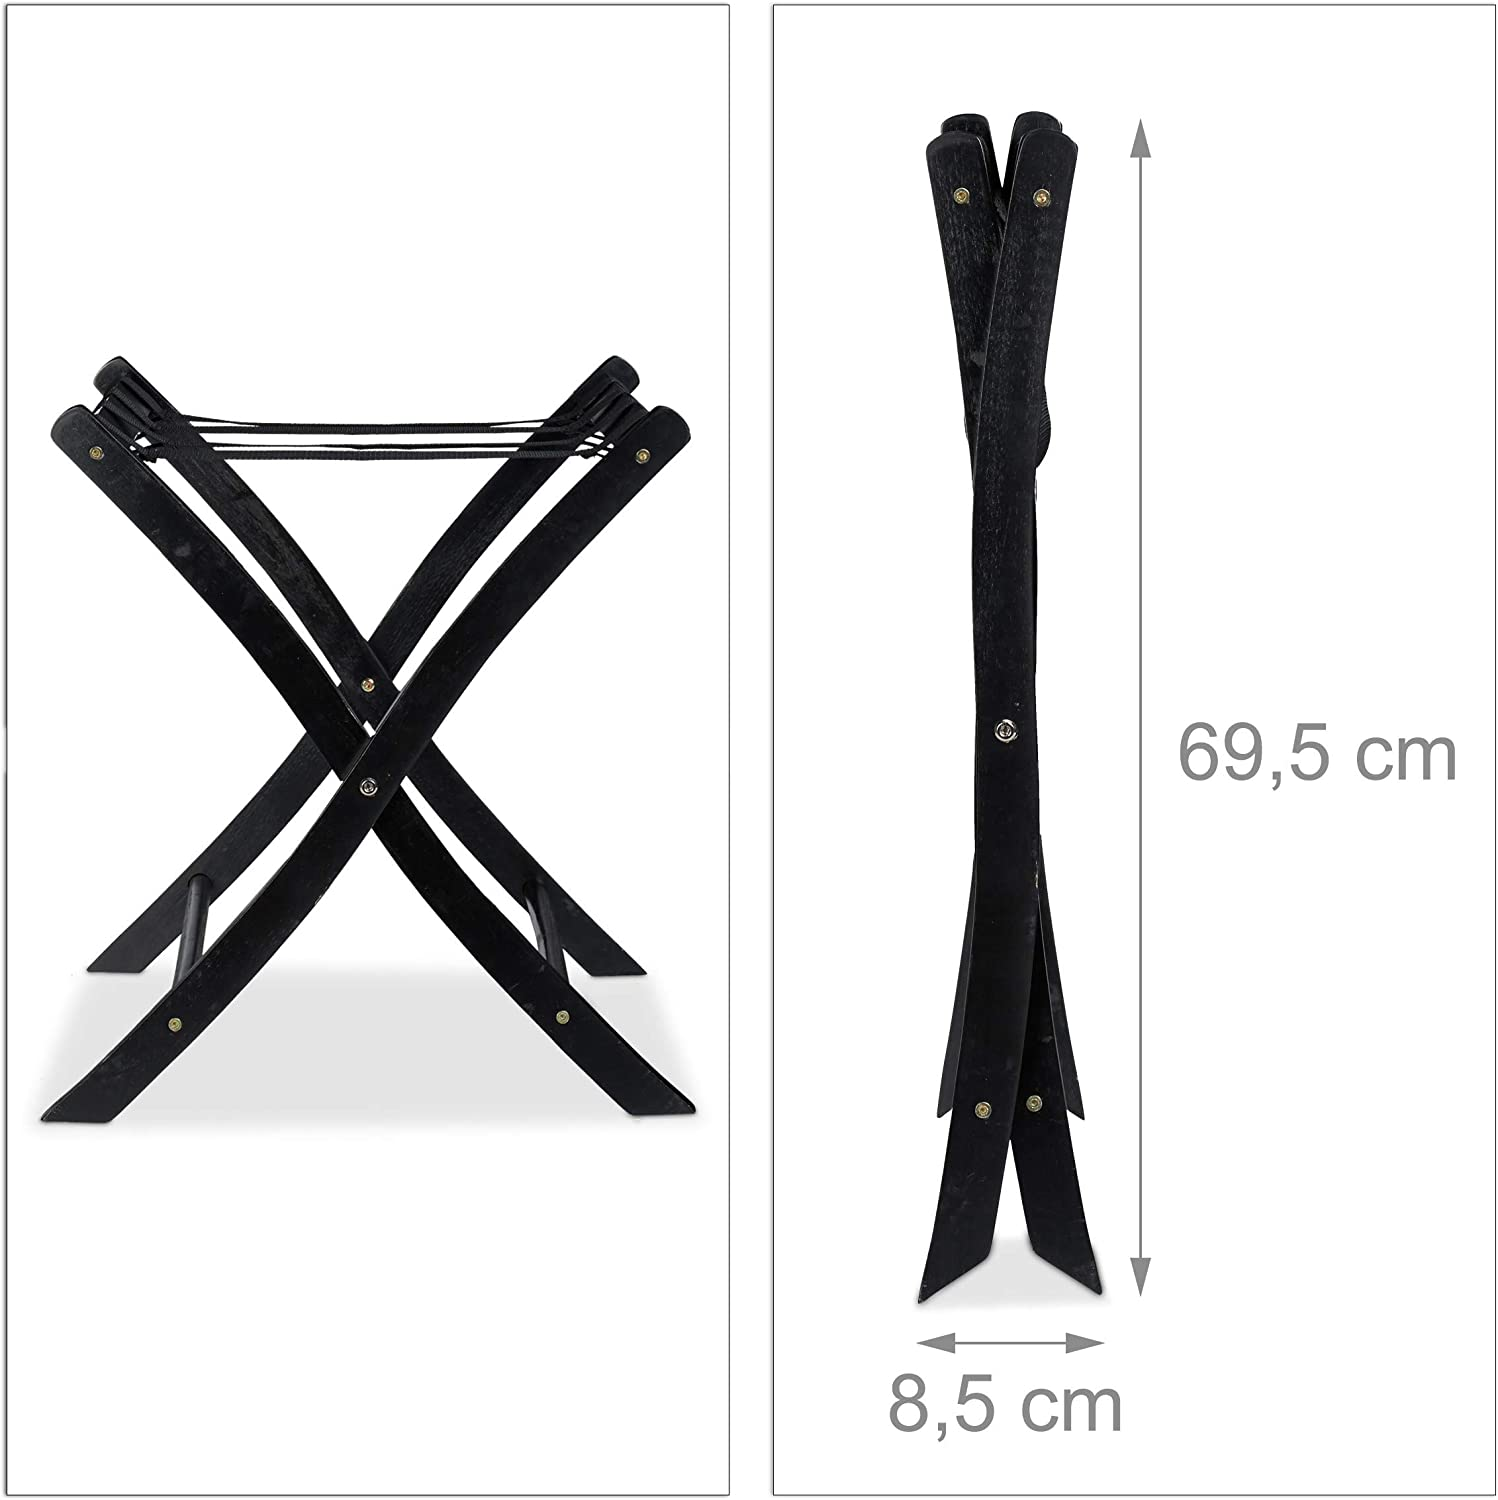 for Travellers Foldable Suitcase Storage Stand Black H x W x D: app Relaxdays Wooden Luggage Rack 52.5 x 66.5 x 48 cm